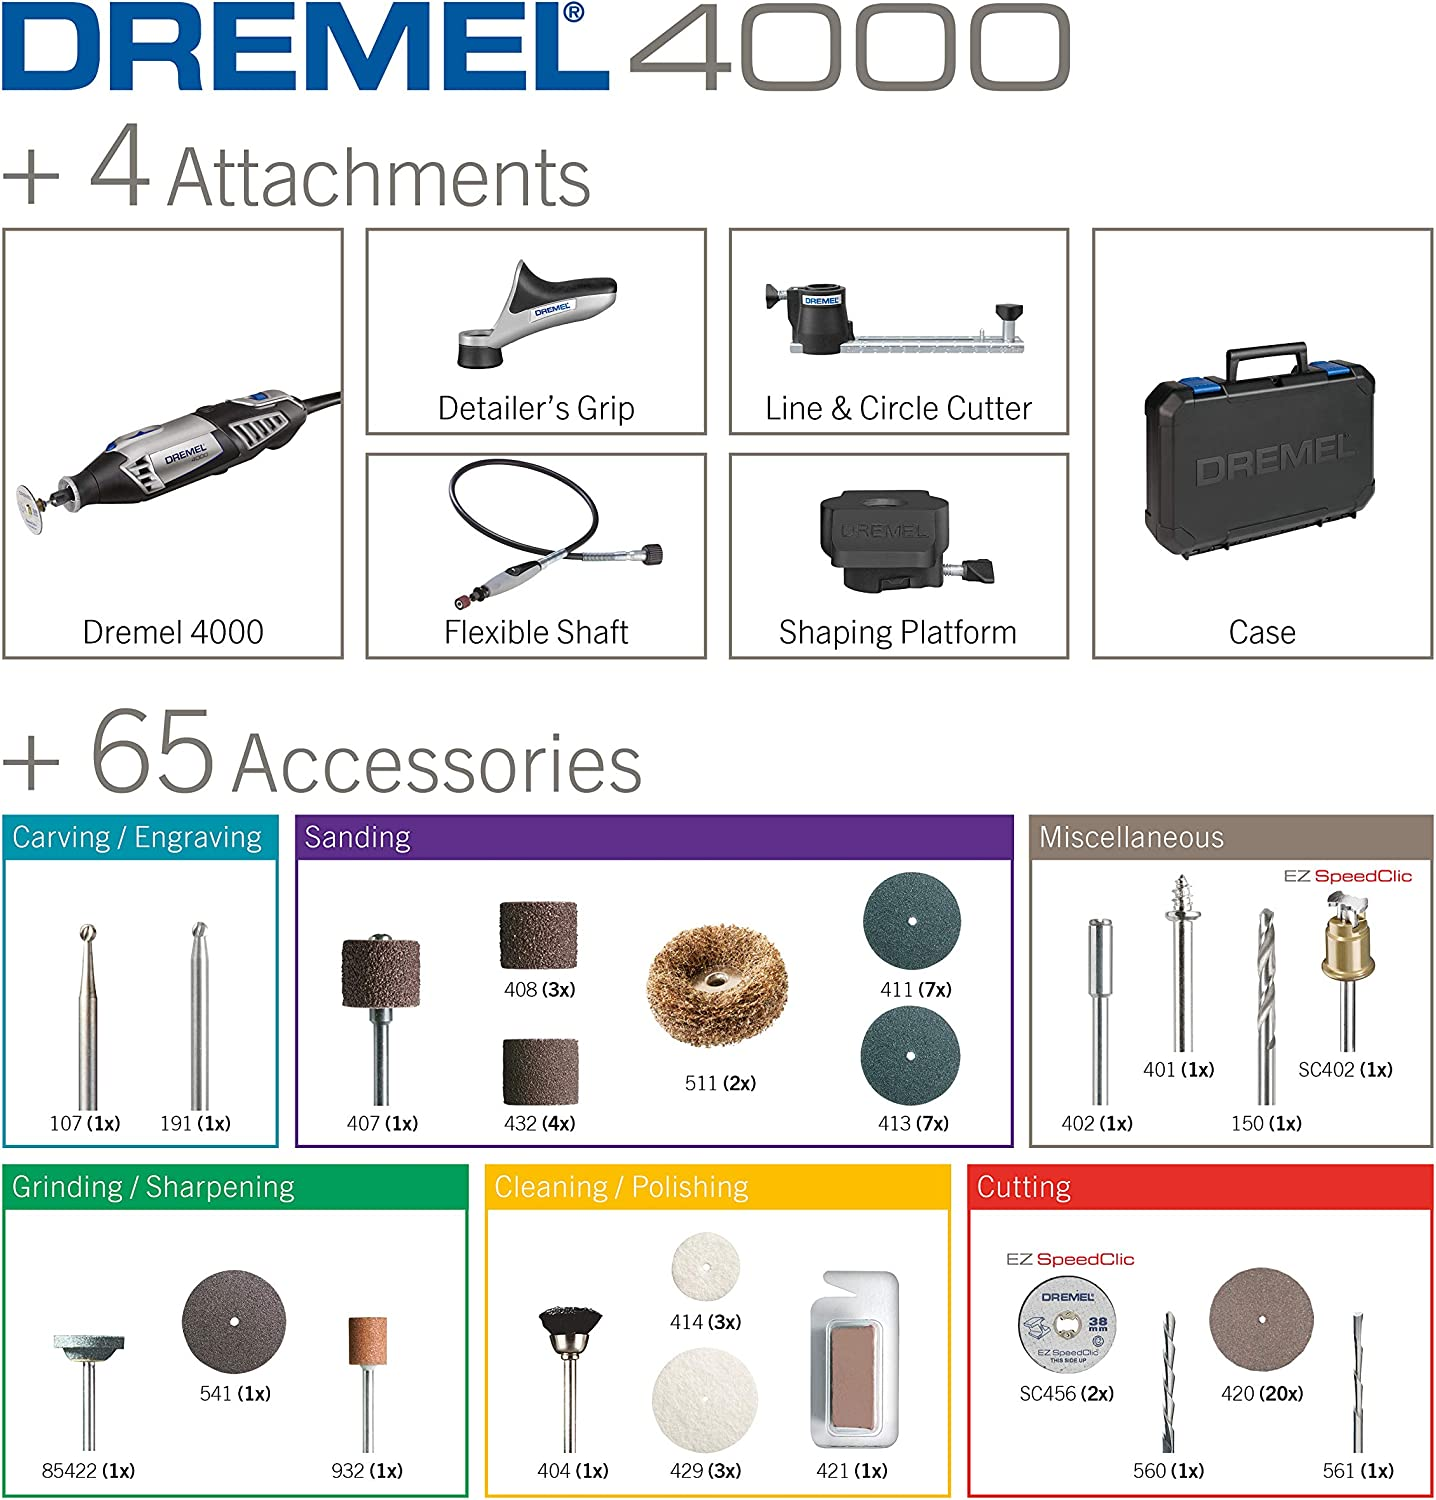 Dremel 4000 Rotary Tool 175 W, Rotary Multi Tool Kit with 4 Attachment 65  Accessories Variable Speed 5000-35000 RPM for Cutting, Carving, Sanding,  Drilling, Polishing, Routing, Sharpening, Grinding: Amazon.co.uk: DIY &  Tools